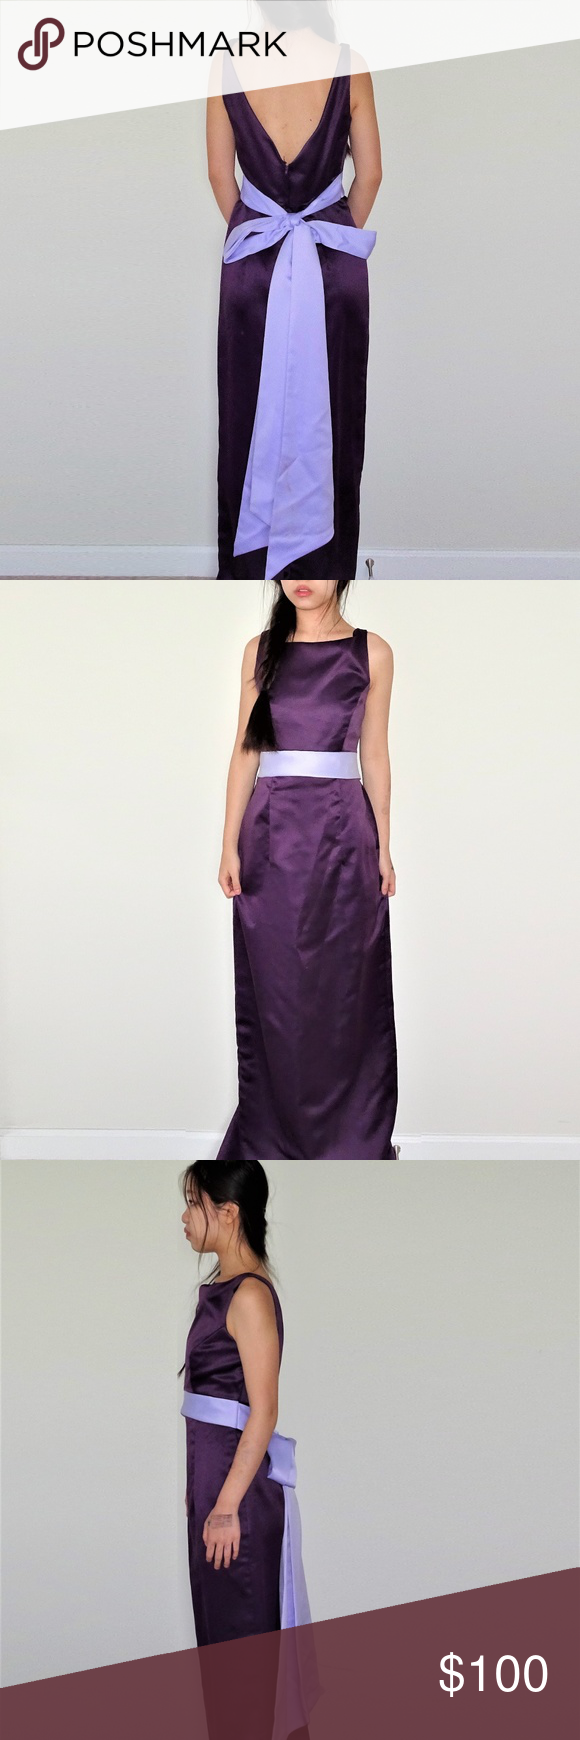 Large Bow High Neck Grecian Wedding/Prom Dress - Floor length - Tie yourself bow - Zipper in back  - Made in USA Jordan Dresses Wedding #grecianweddingdresses Large Bow High Neck Grecian Wedding/Prom Dress - Floor length - Tie yourself bow - Zipper in back  - Made in USA Jordan Dresses Wedding #grecianweddingdresses